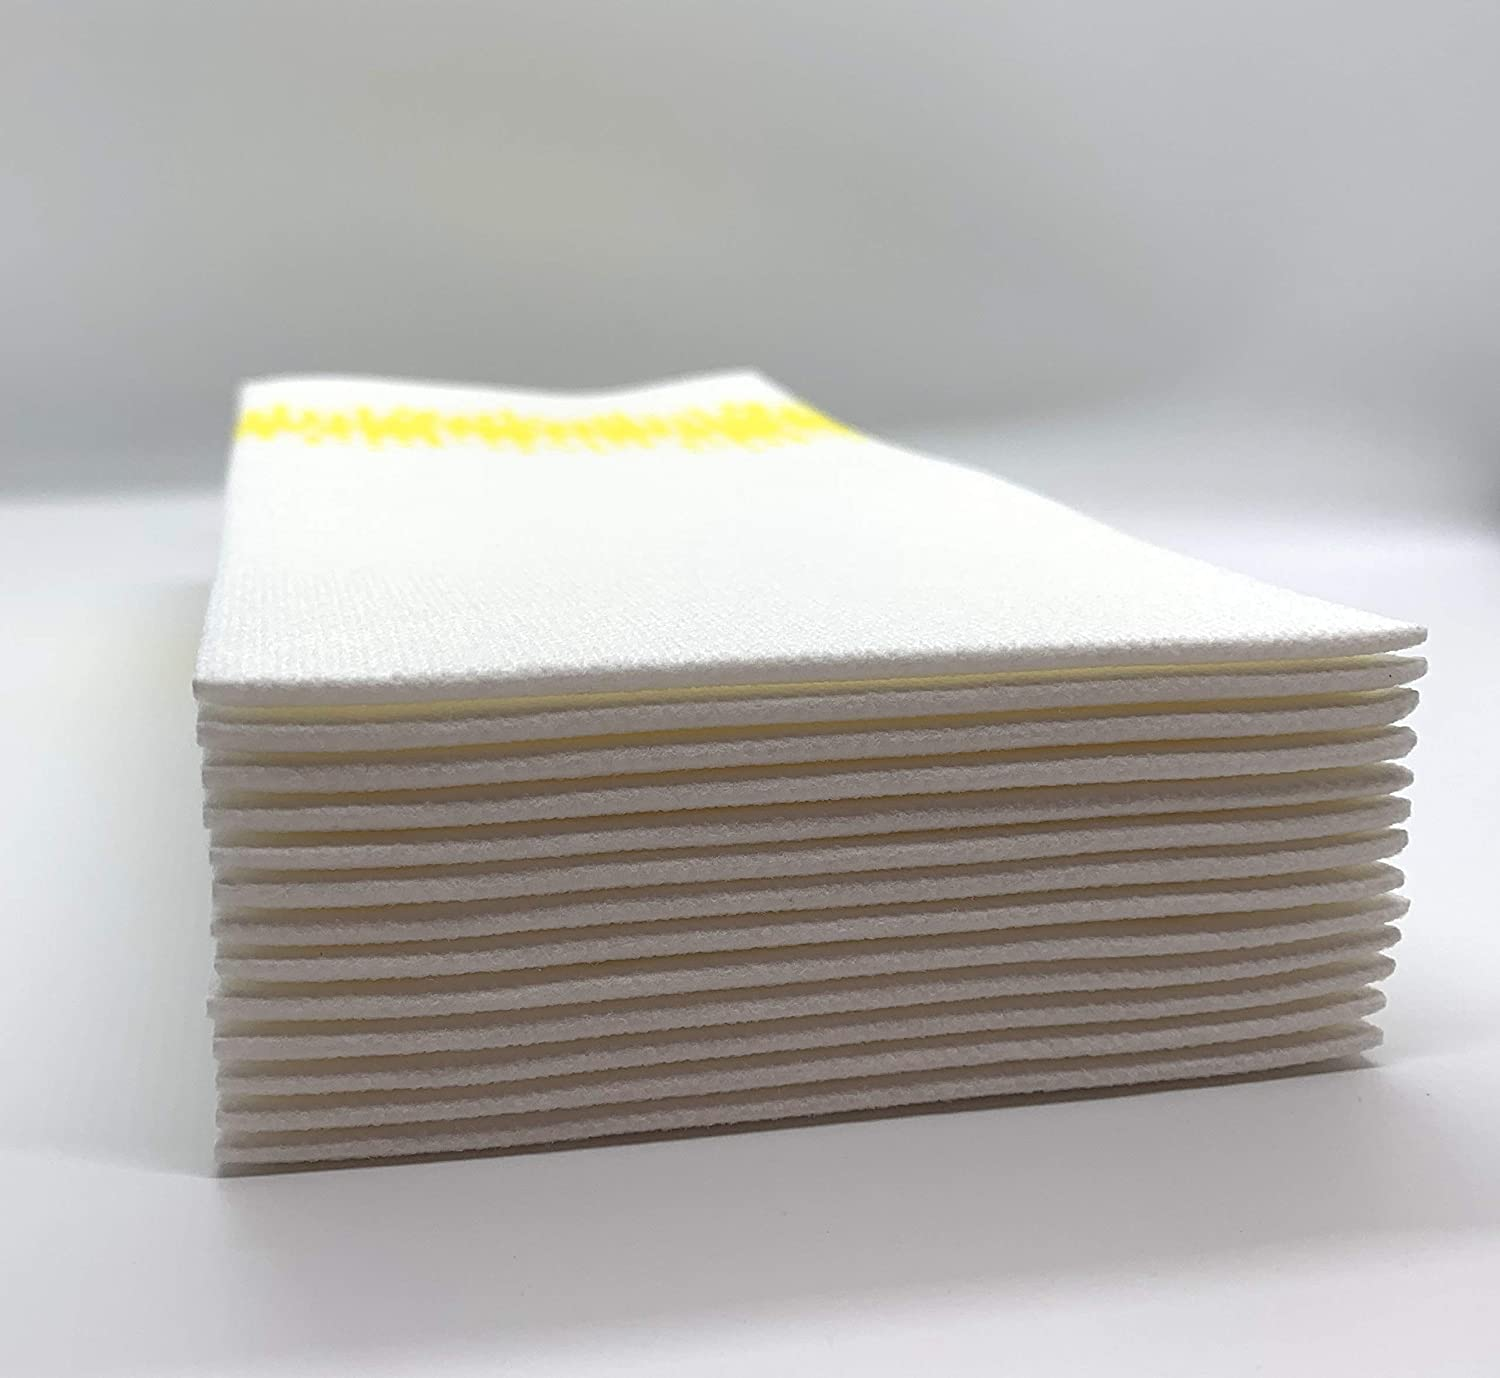 Image 4 of Disposable Hand Towels, Pack of 100